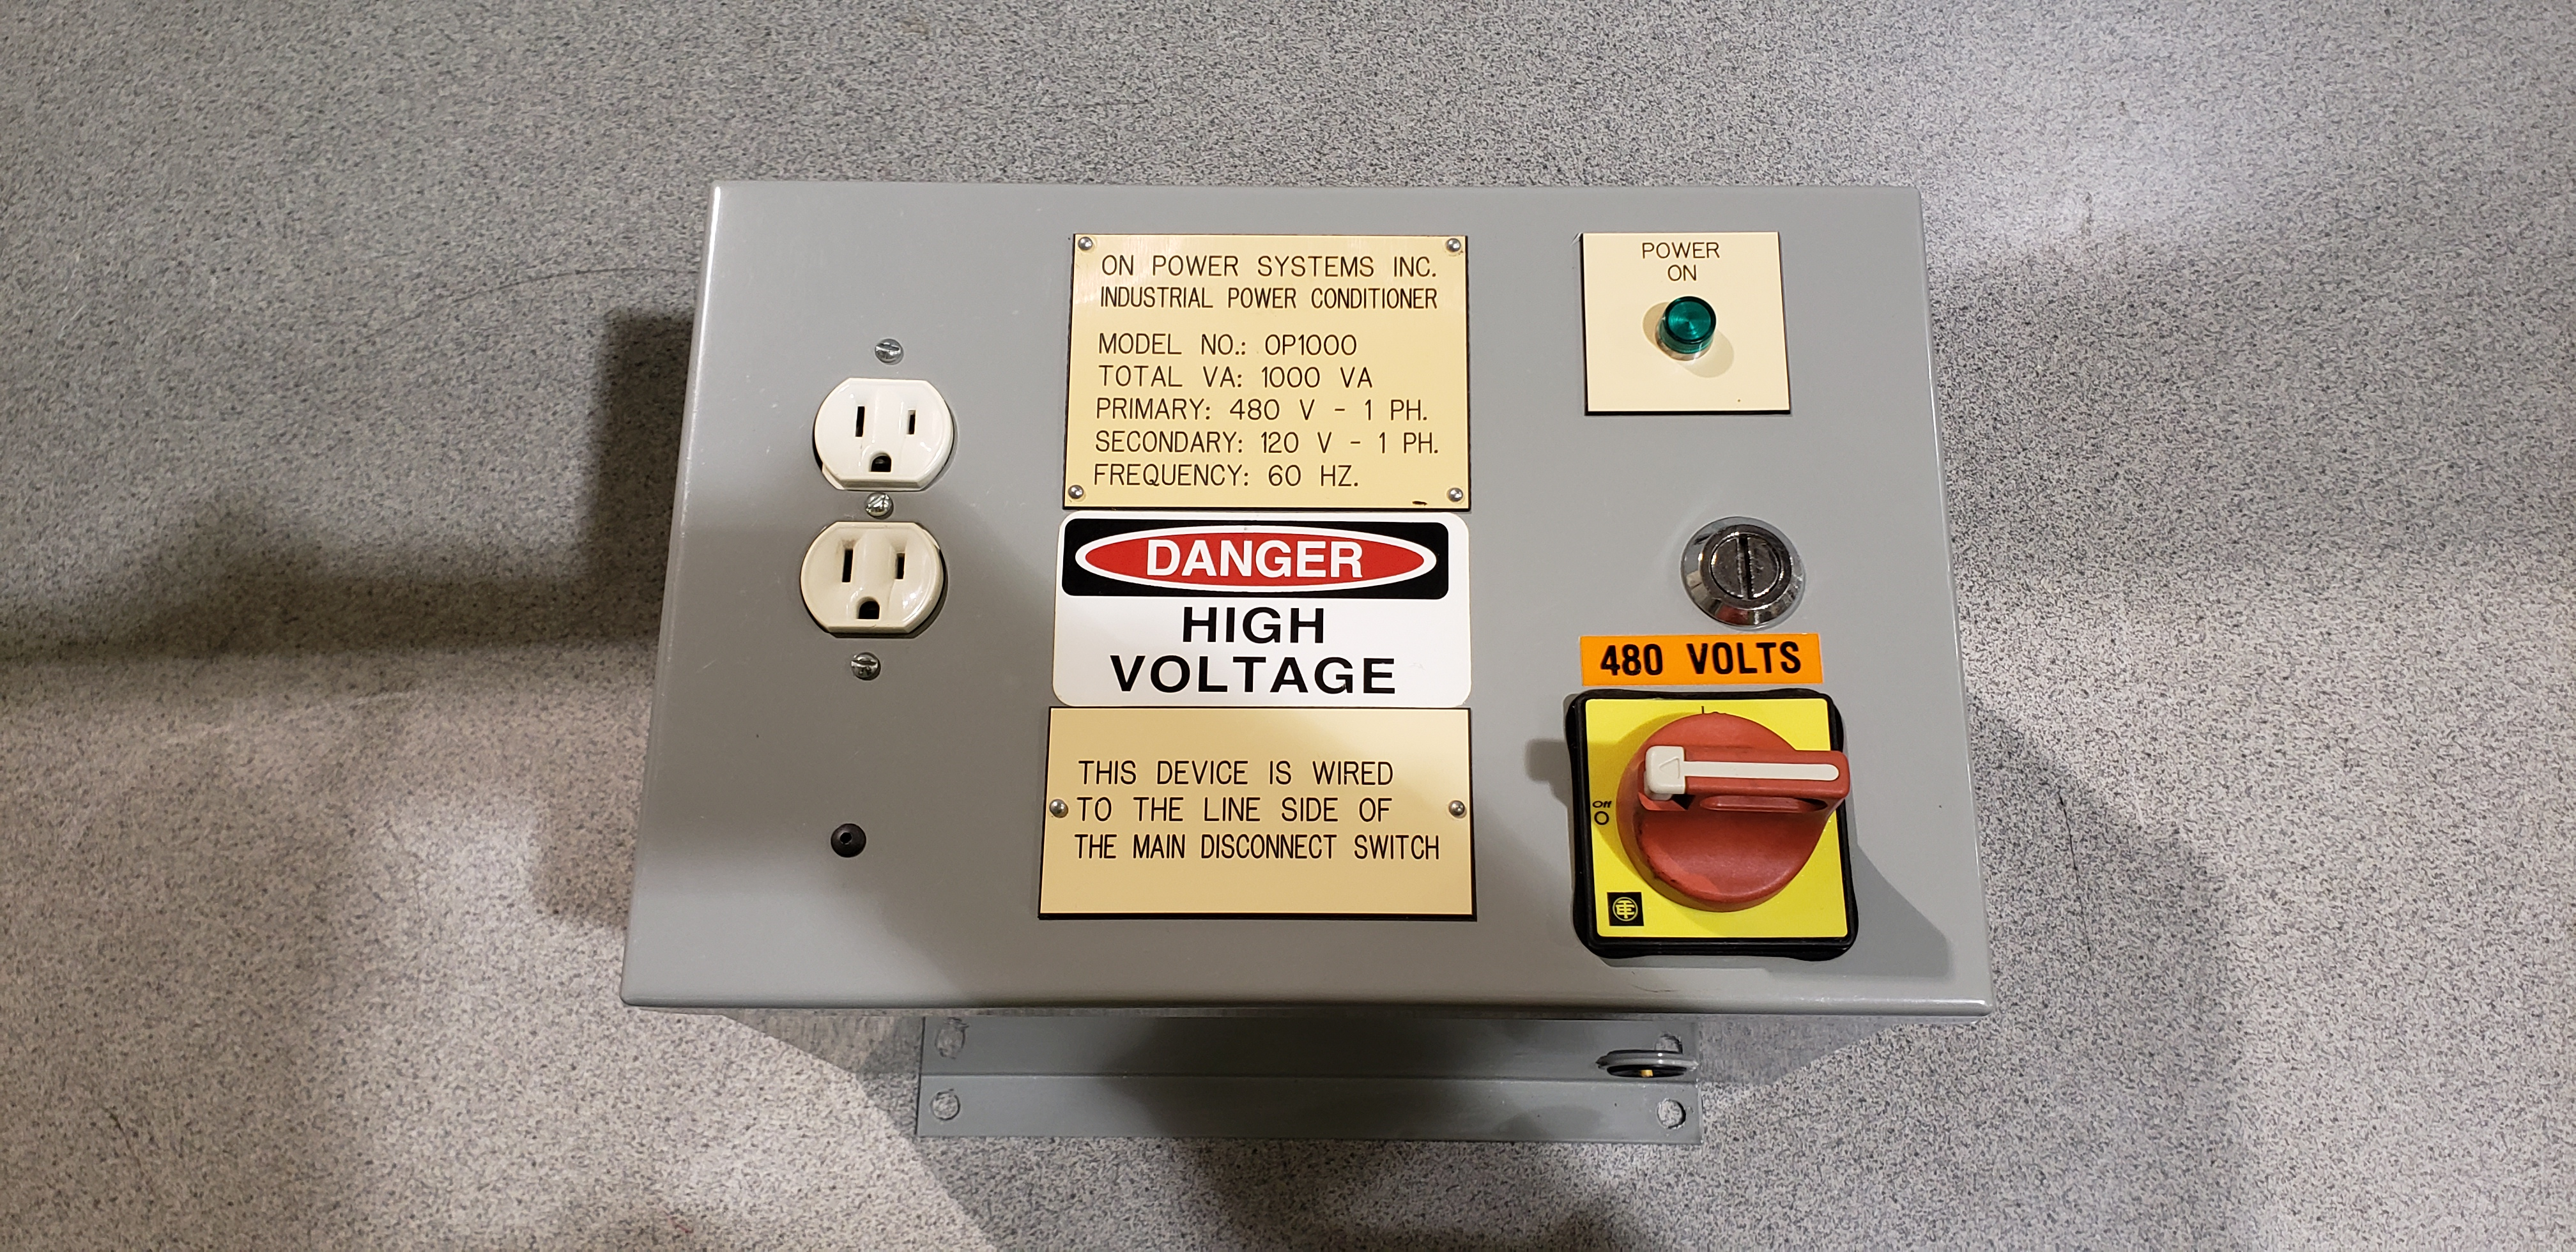 On Power Systems Inc Induction Power Conditioner 1000va 480-120v